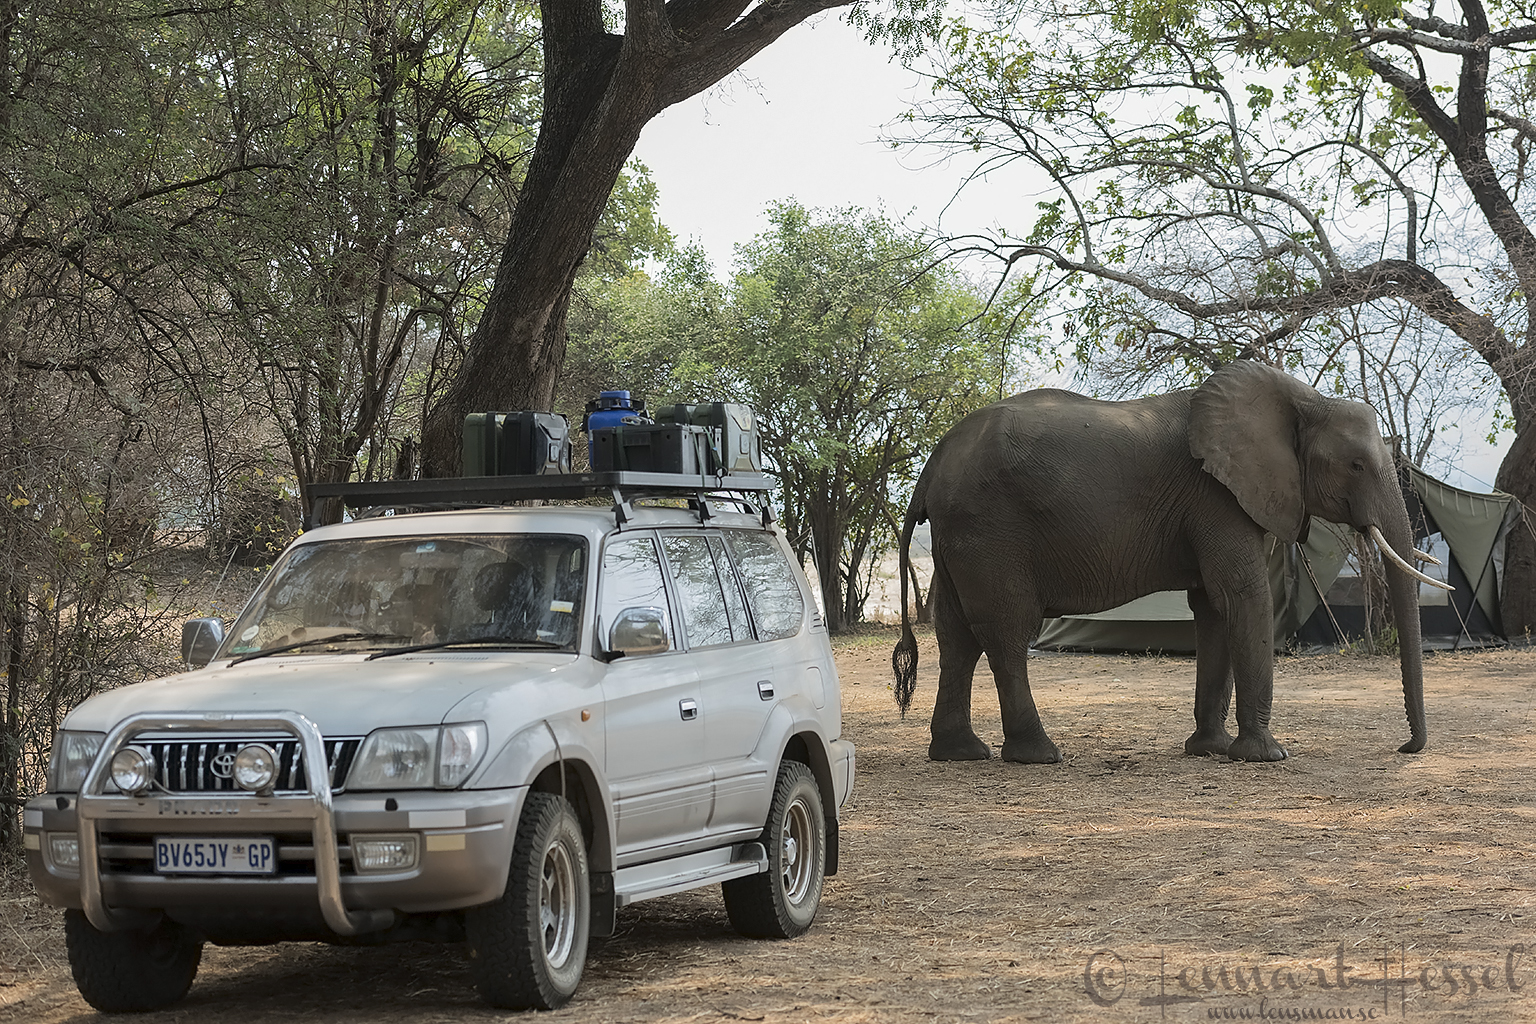 Elephant in camp Mana Pools National Park